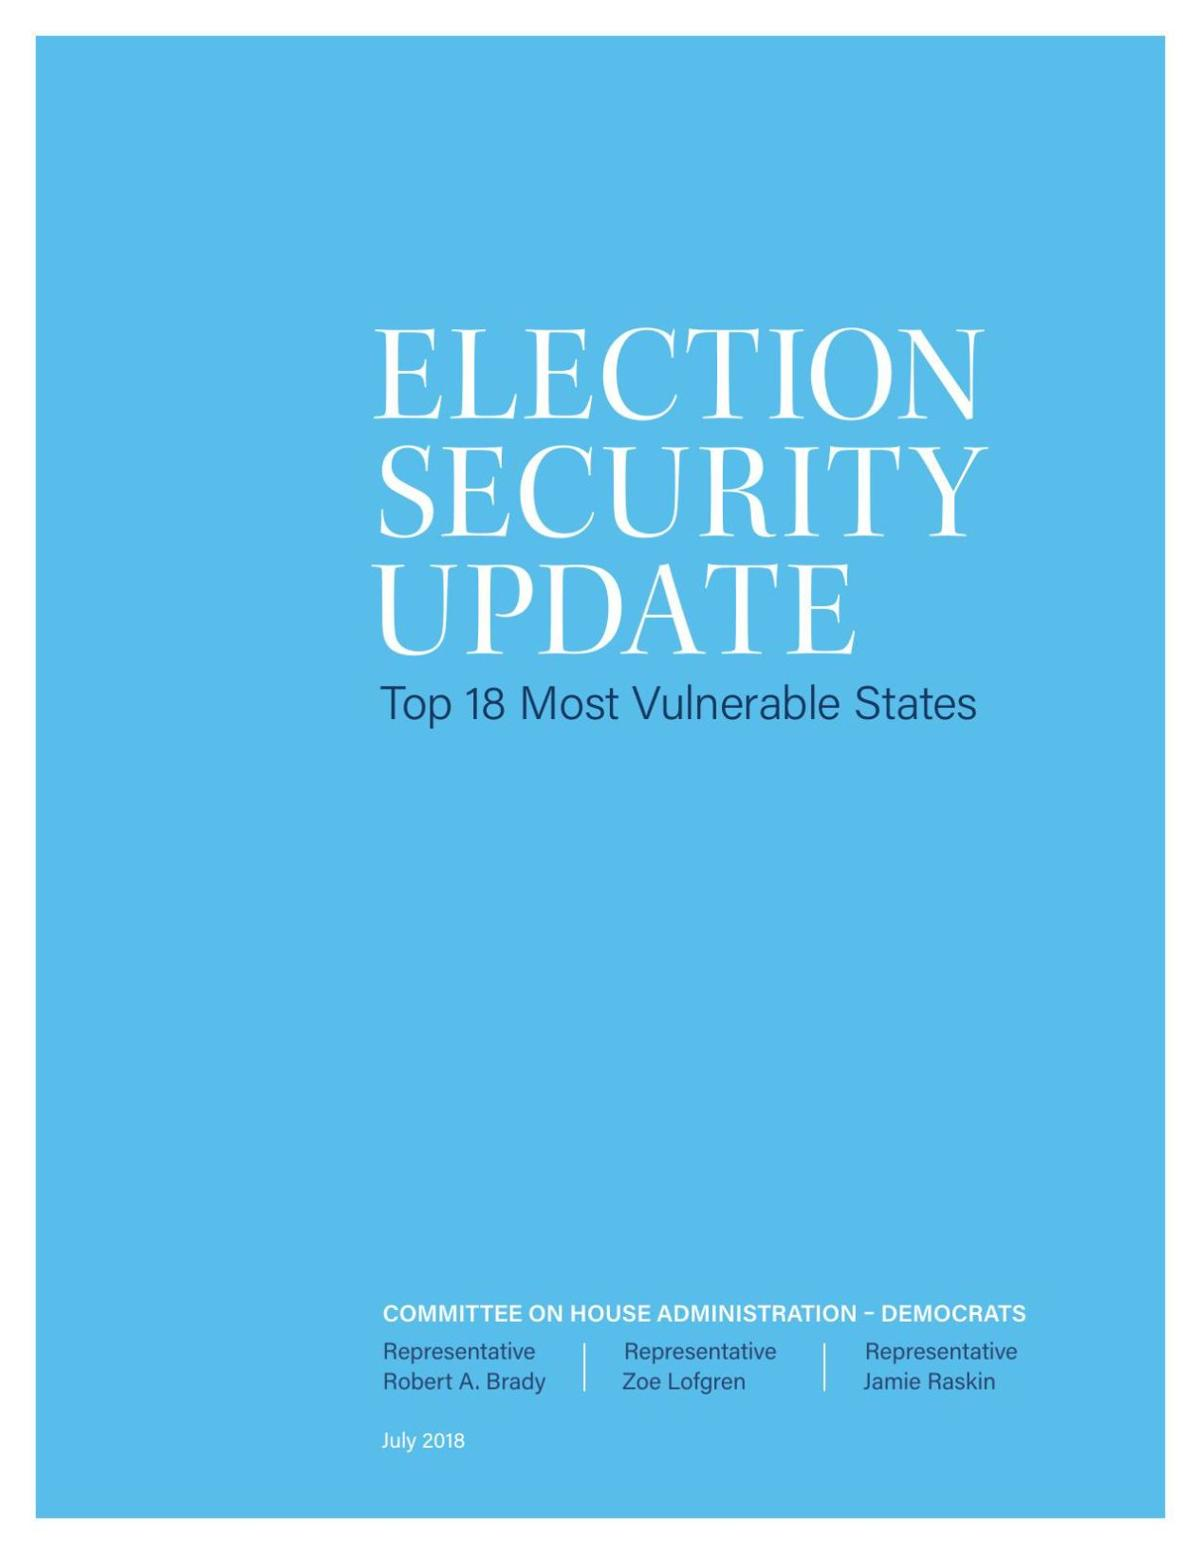 Election Security Update - July 2018